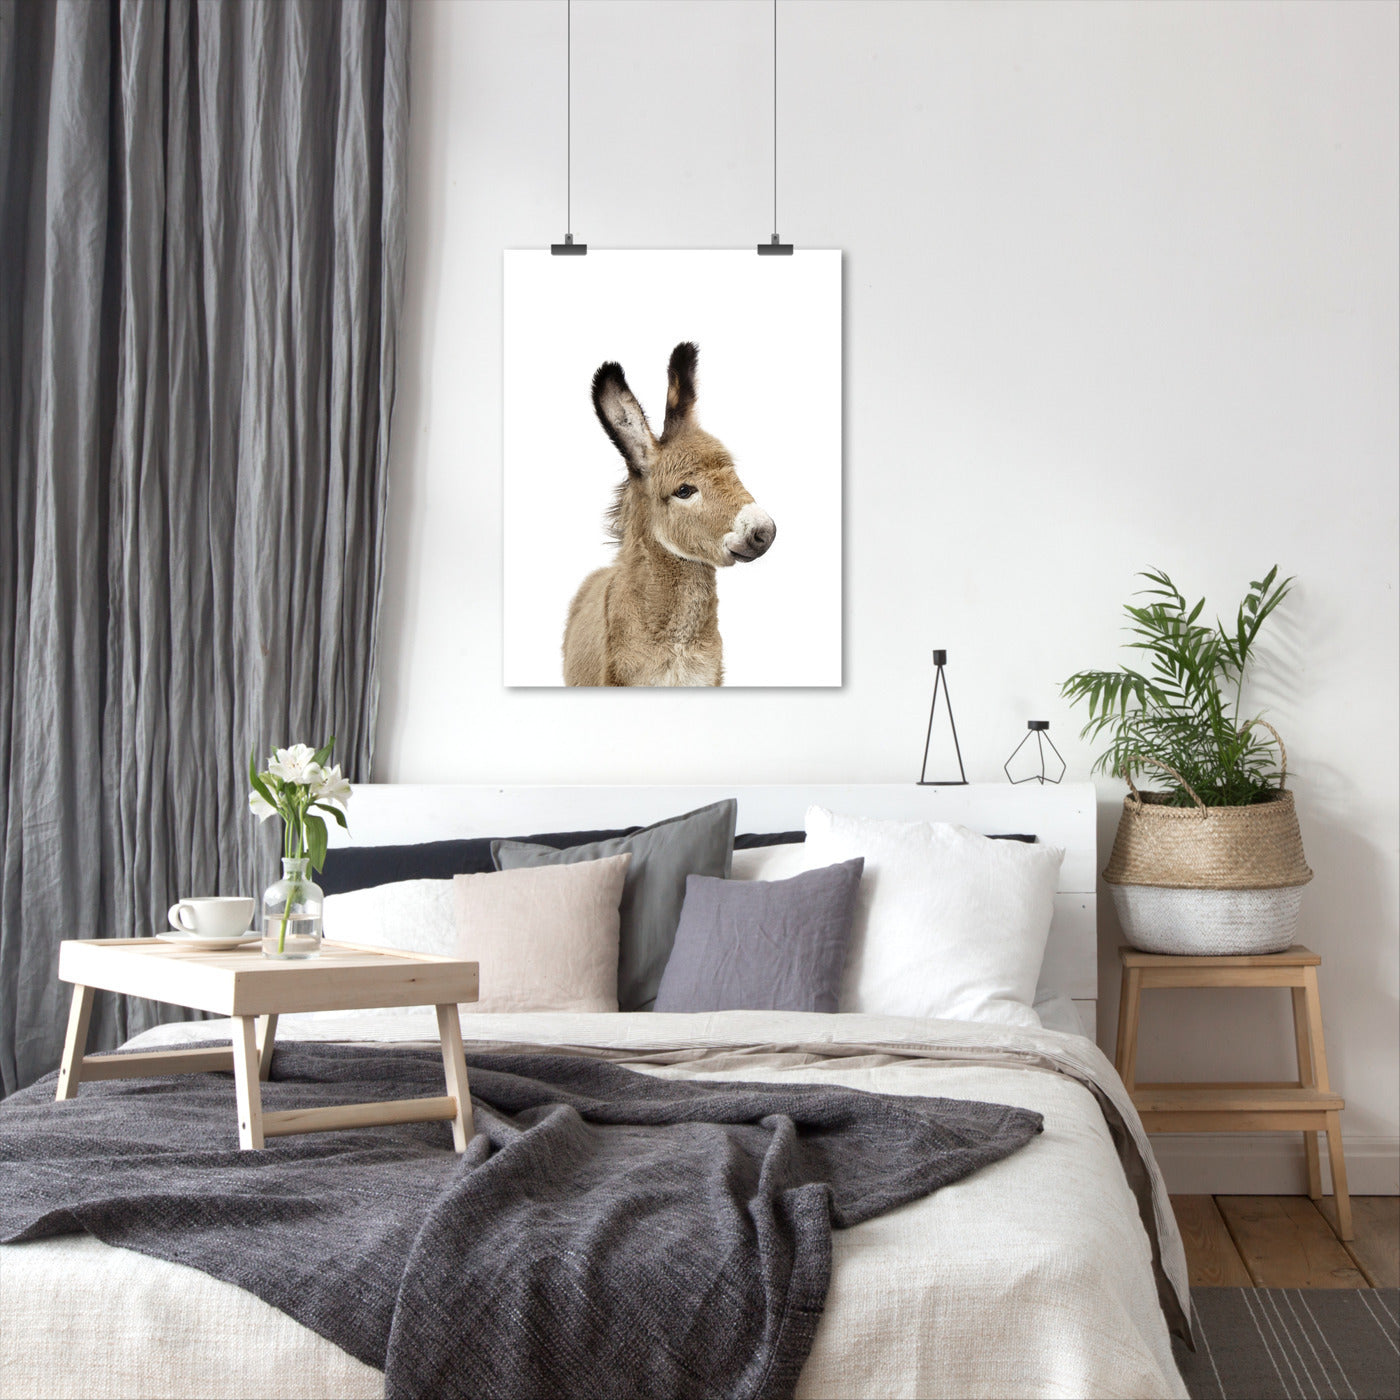 Little Donkey by Sisi and Seb - Art Print - Americanflat